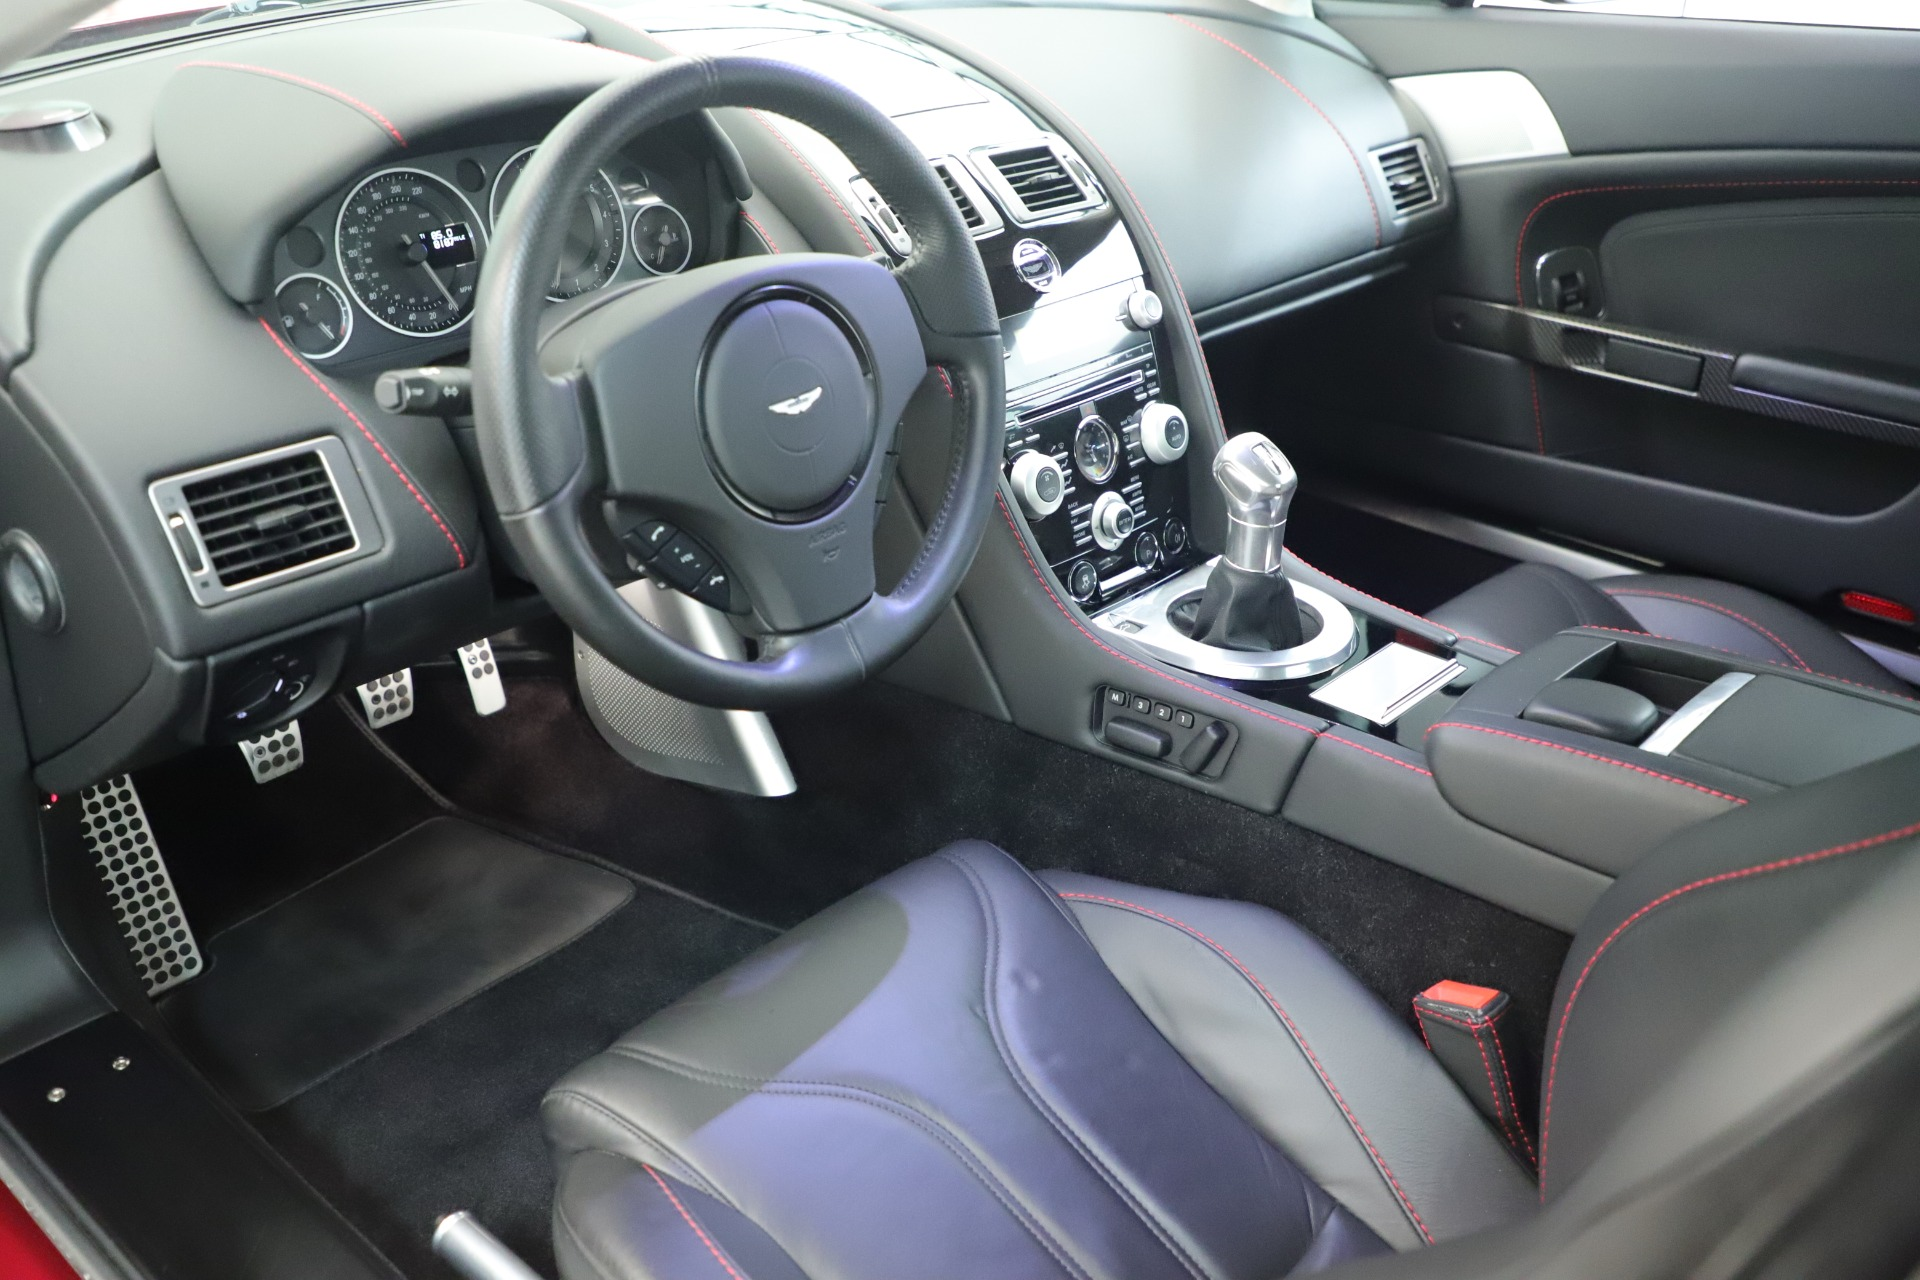 Used 2011 Aston Martin V12 Vantage Coupe For Sale In Westport, CT 3395_p20